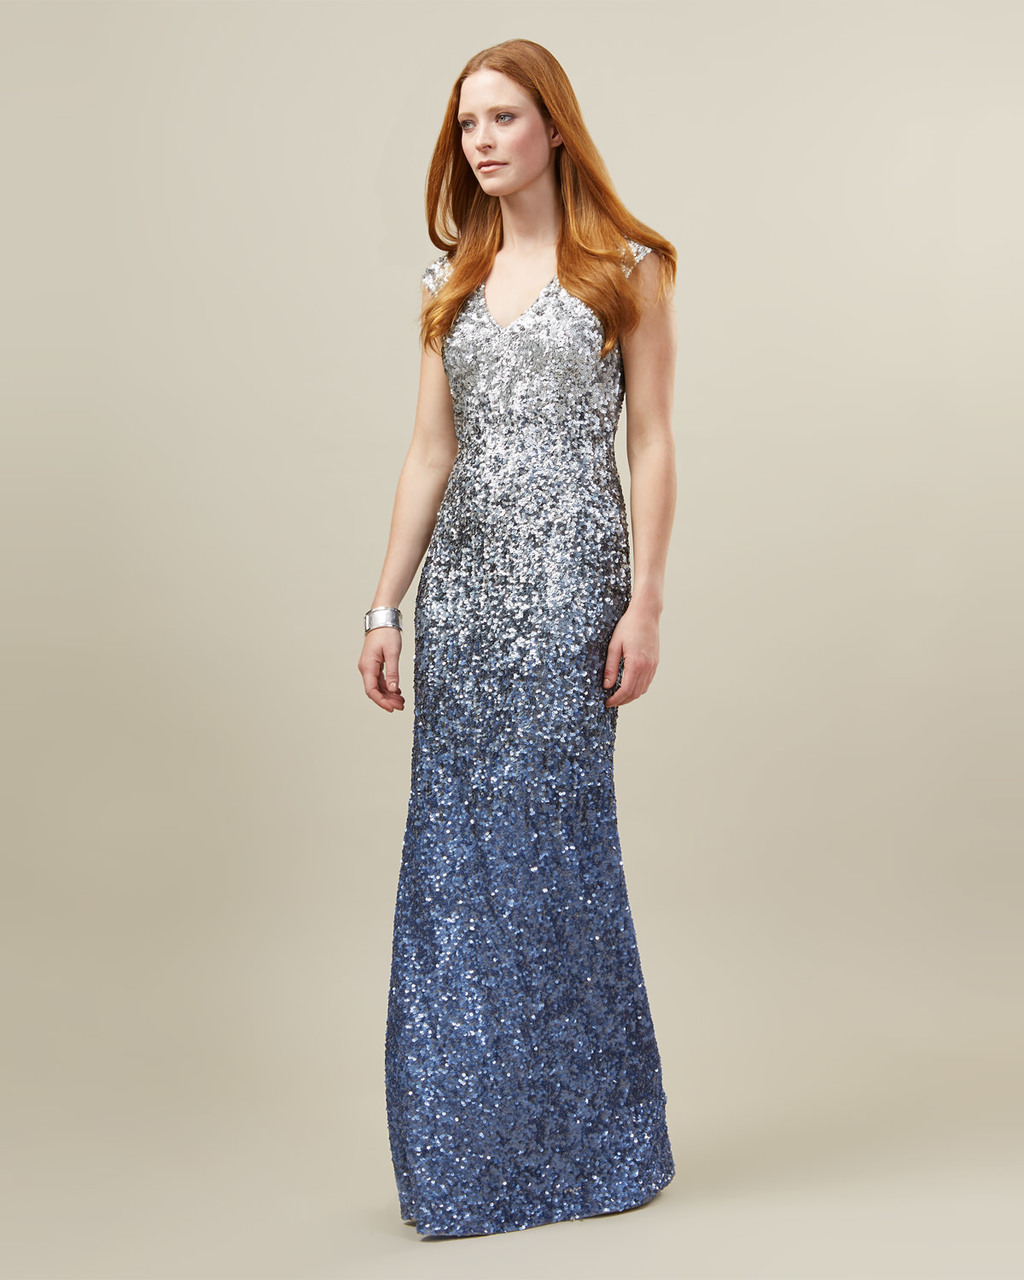 Charlie Sequinned Dress - style: ballgown; neckline: plunge; pattern: plain; sleeve style: sleeveless; secondary colour: diva blue; predominant colour: pale blue; occasions: evening, occasion; length: floor length; fit: body skimming; fibres: polyester/polyamide - 100%; sleeve length: sleeveless; pattern type: fabric; texture group: jersey - stretchy/drapey; embellishment: sequins; multicoloured: multicoloured; season: s/s 2016; wardrobe: event